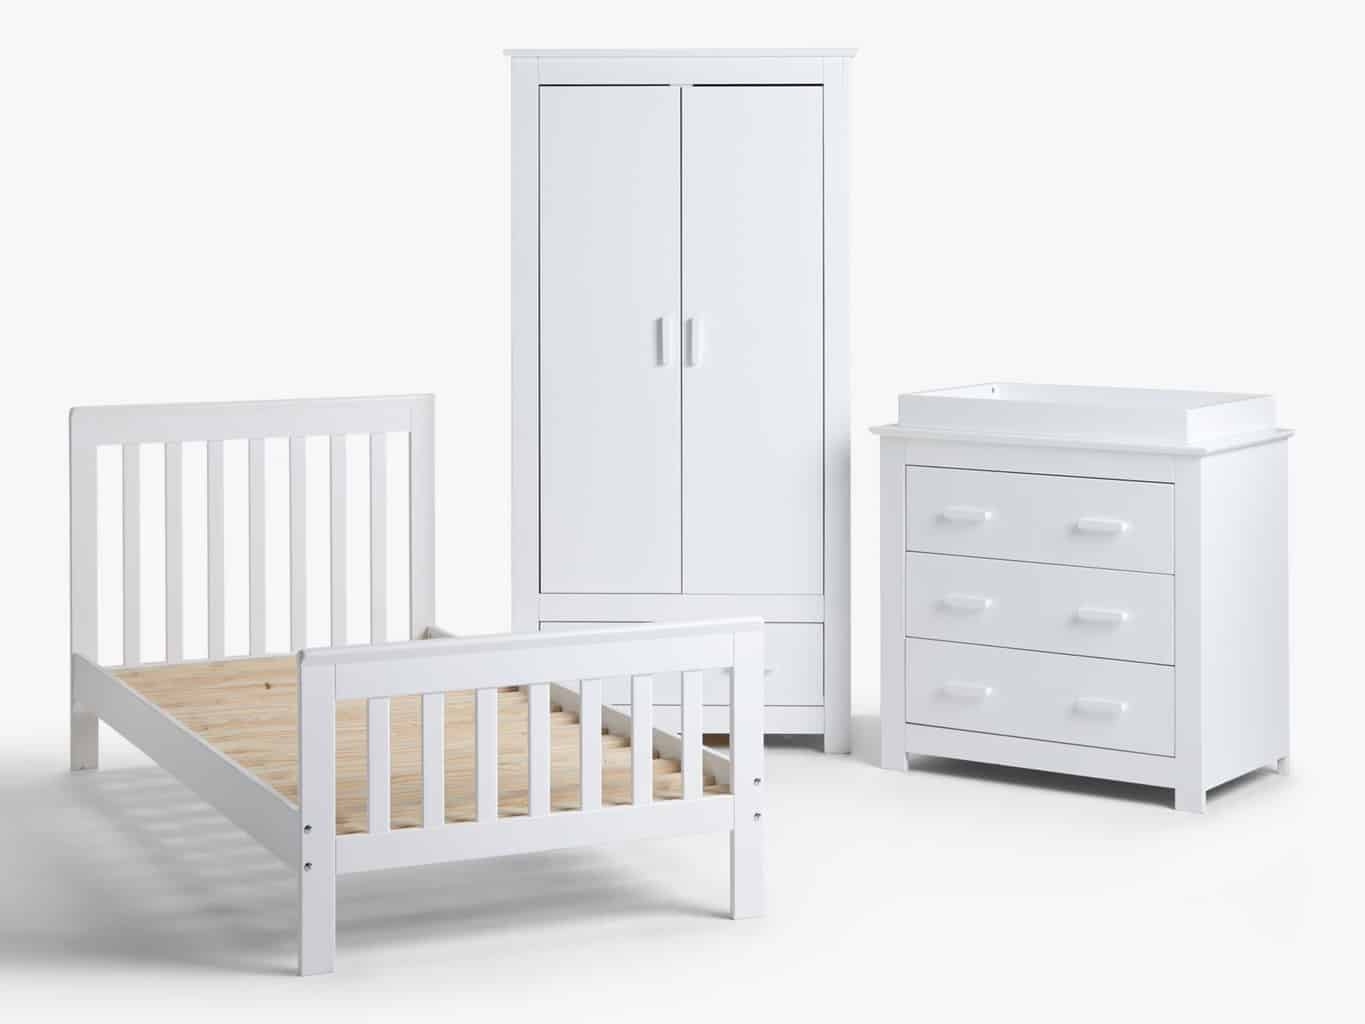 White painted bed frame, dresser and wardrobe